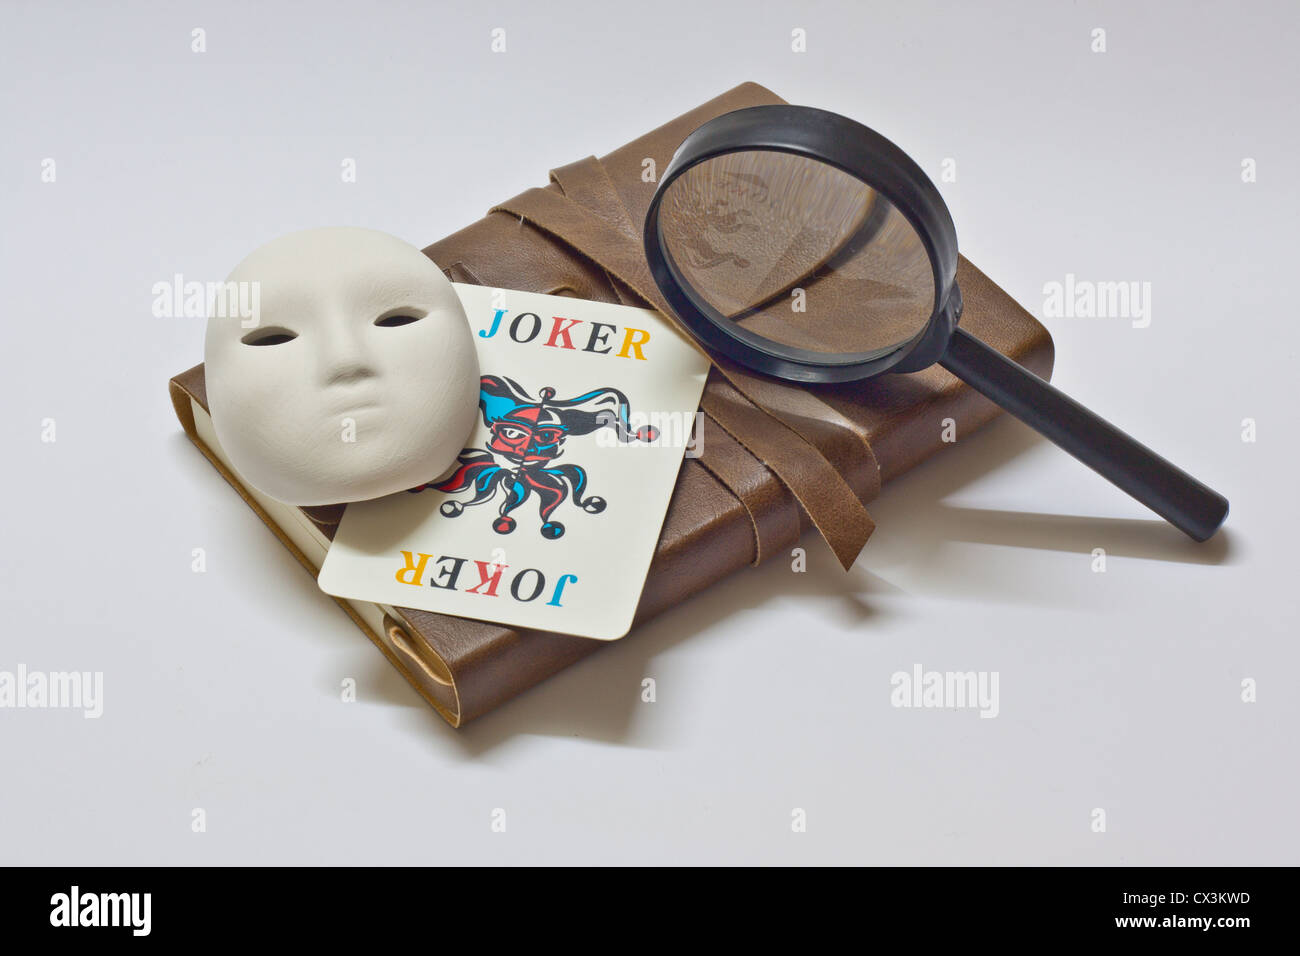 detective notebook and joker - Stock Image